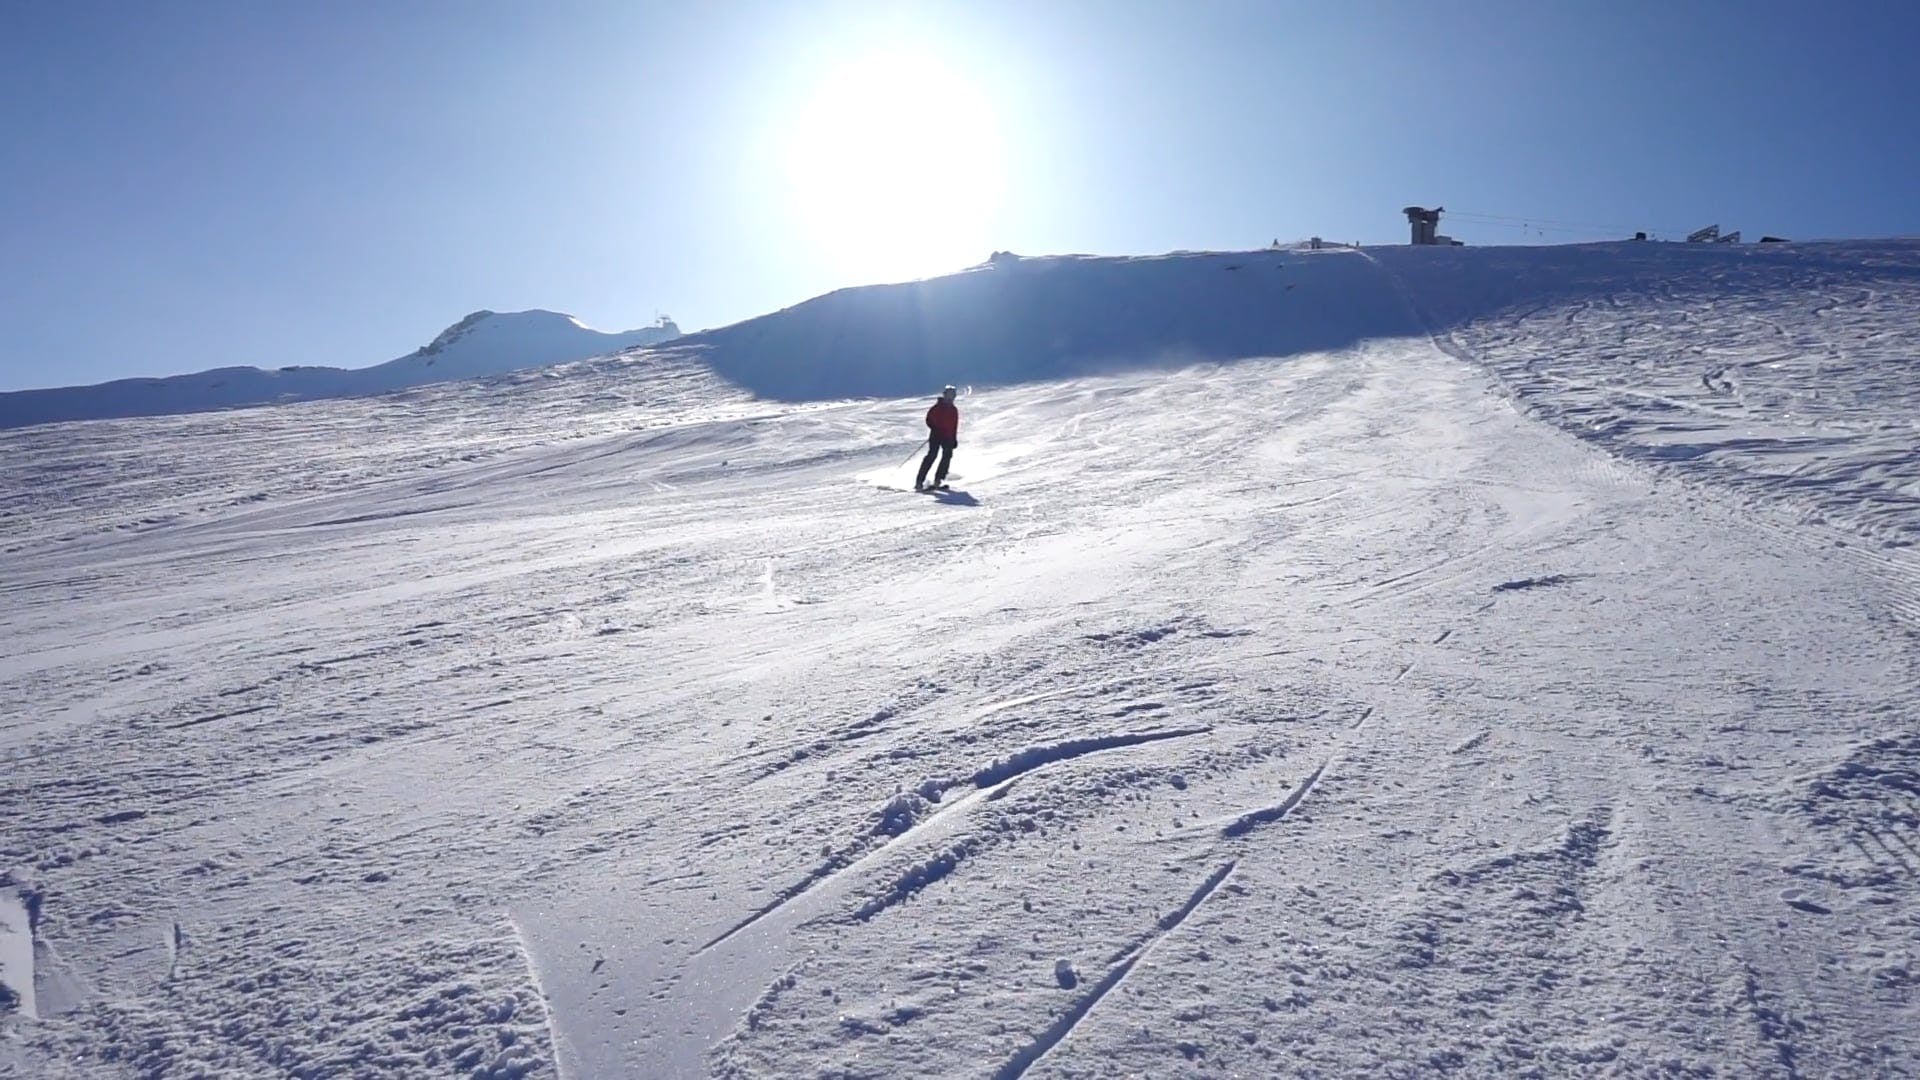 Man Skiing During Daytime